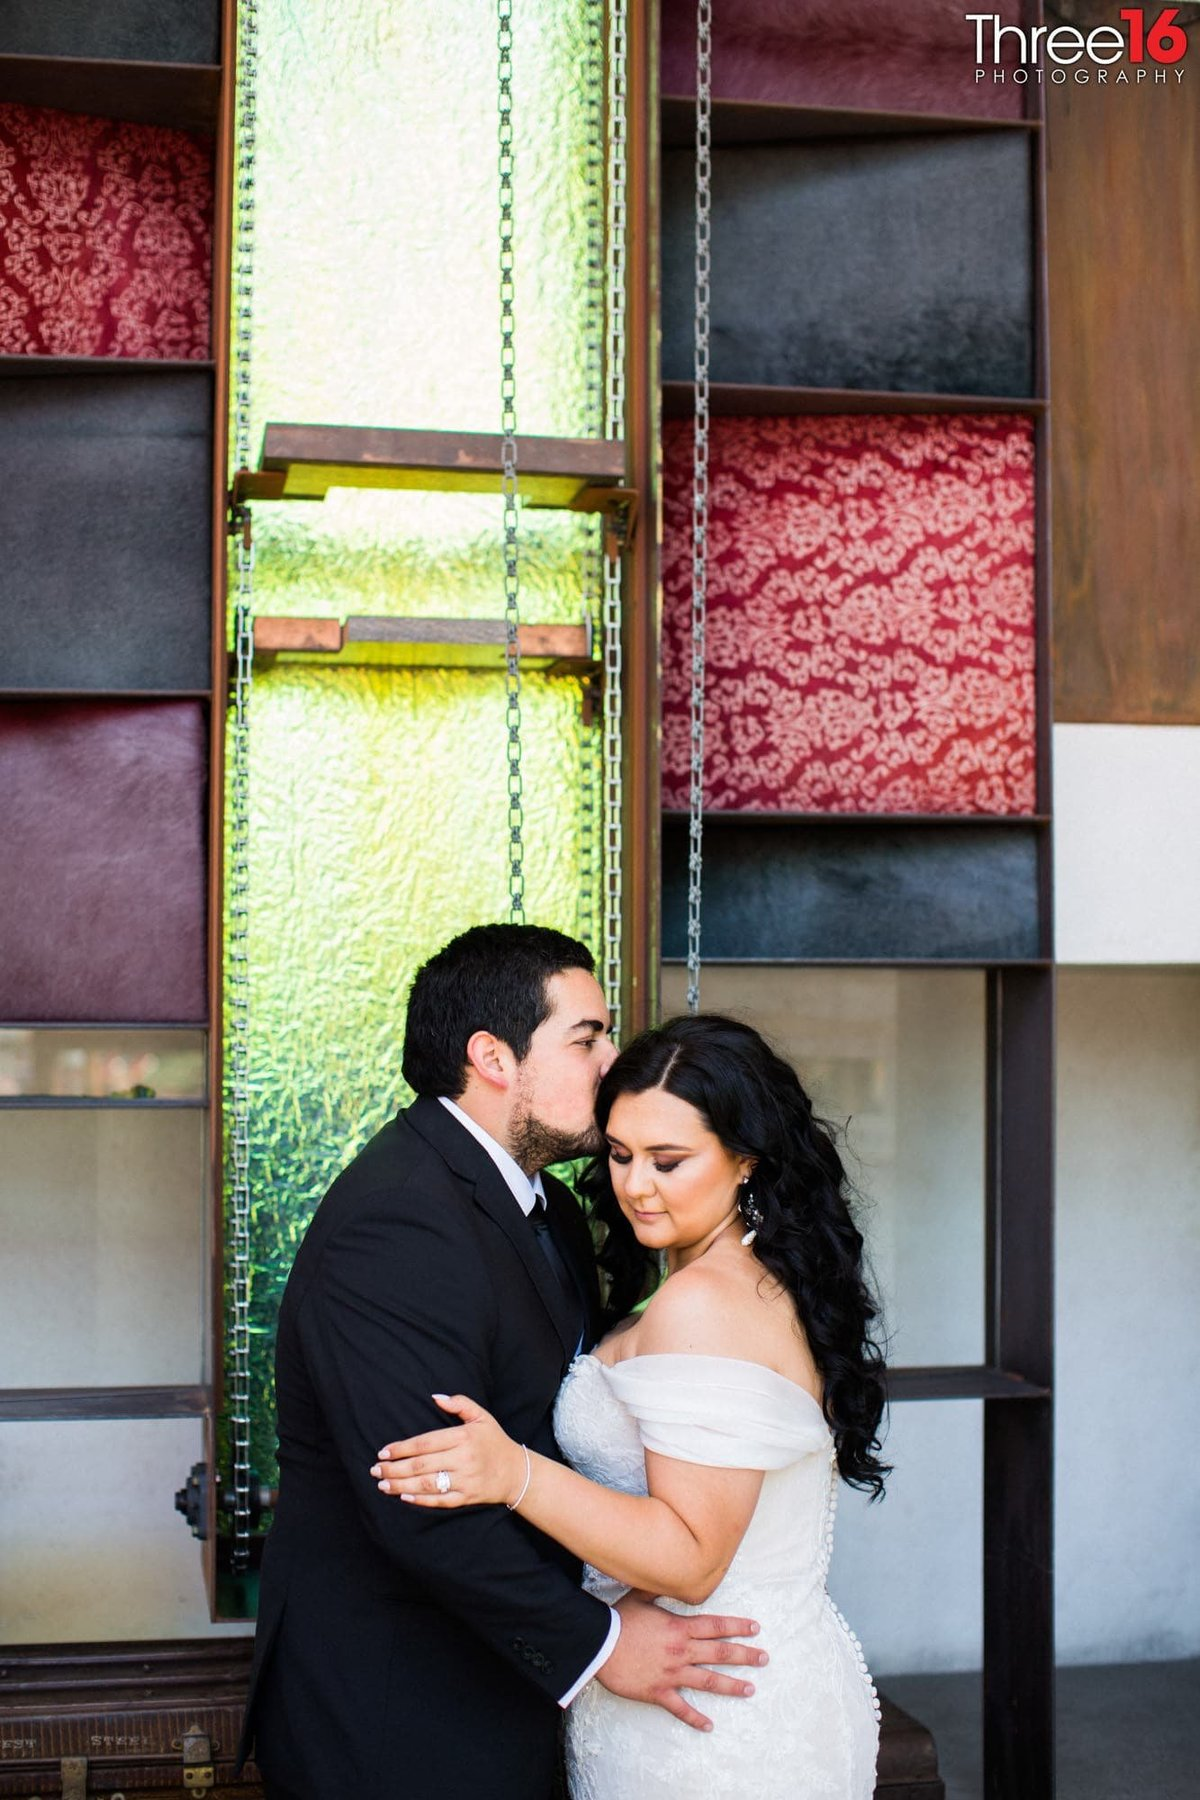 Groom kisses his Bride on the cheek during a quiet moment away from the guests